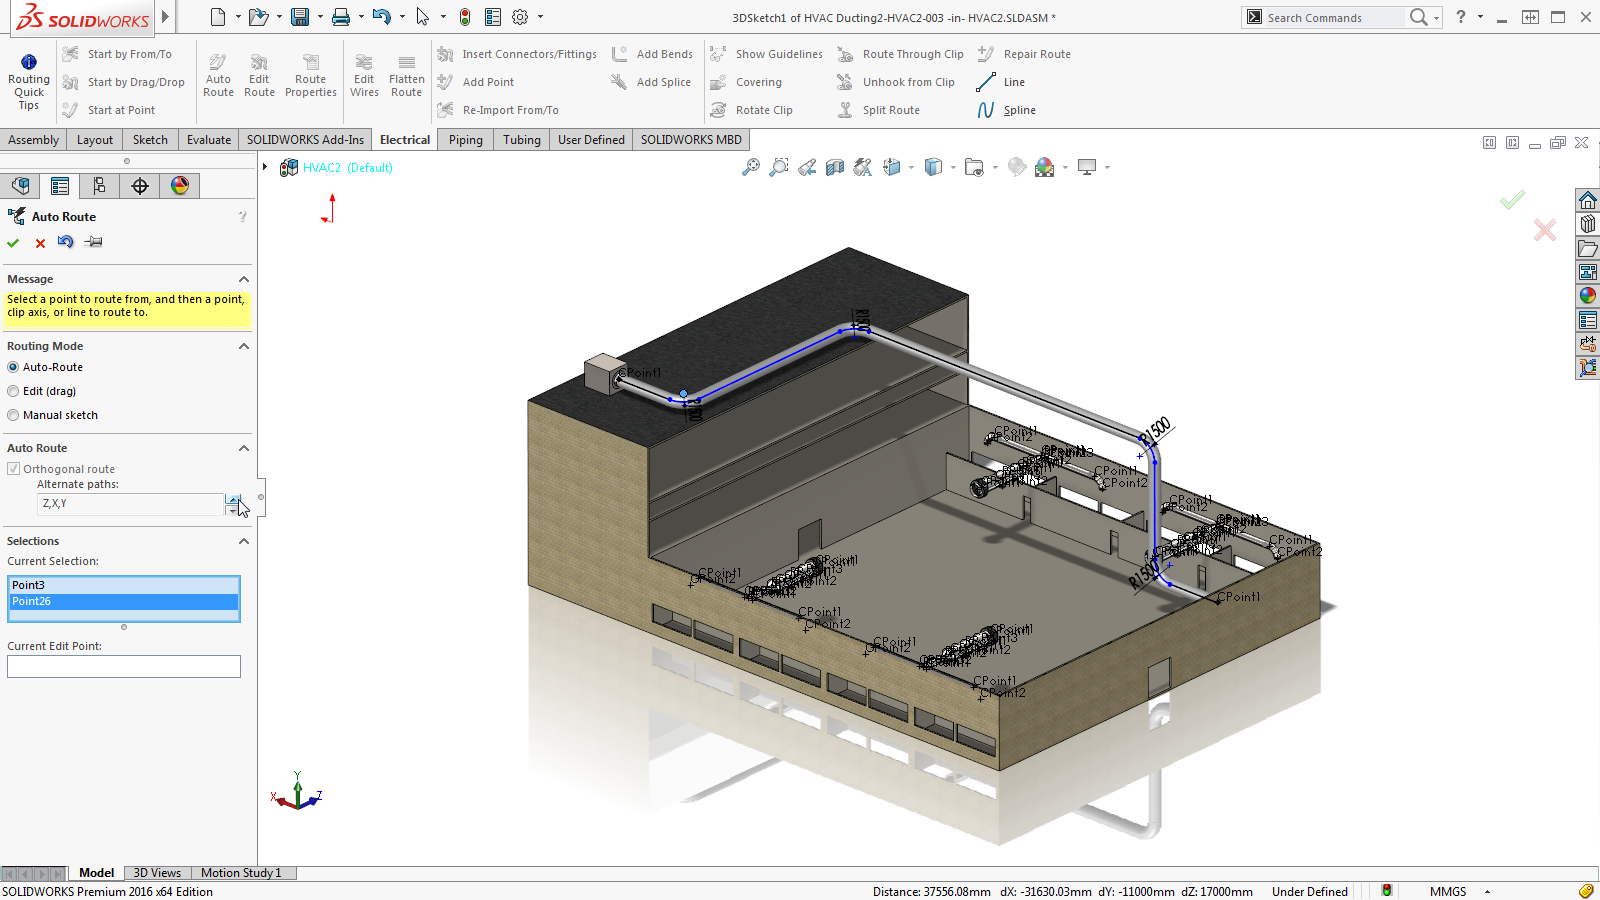 SOLIDWORKS 2016: Helping Enhance the Design Detail in Your Product ...